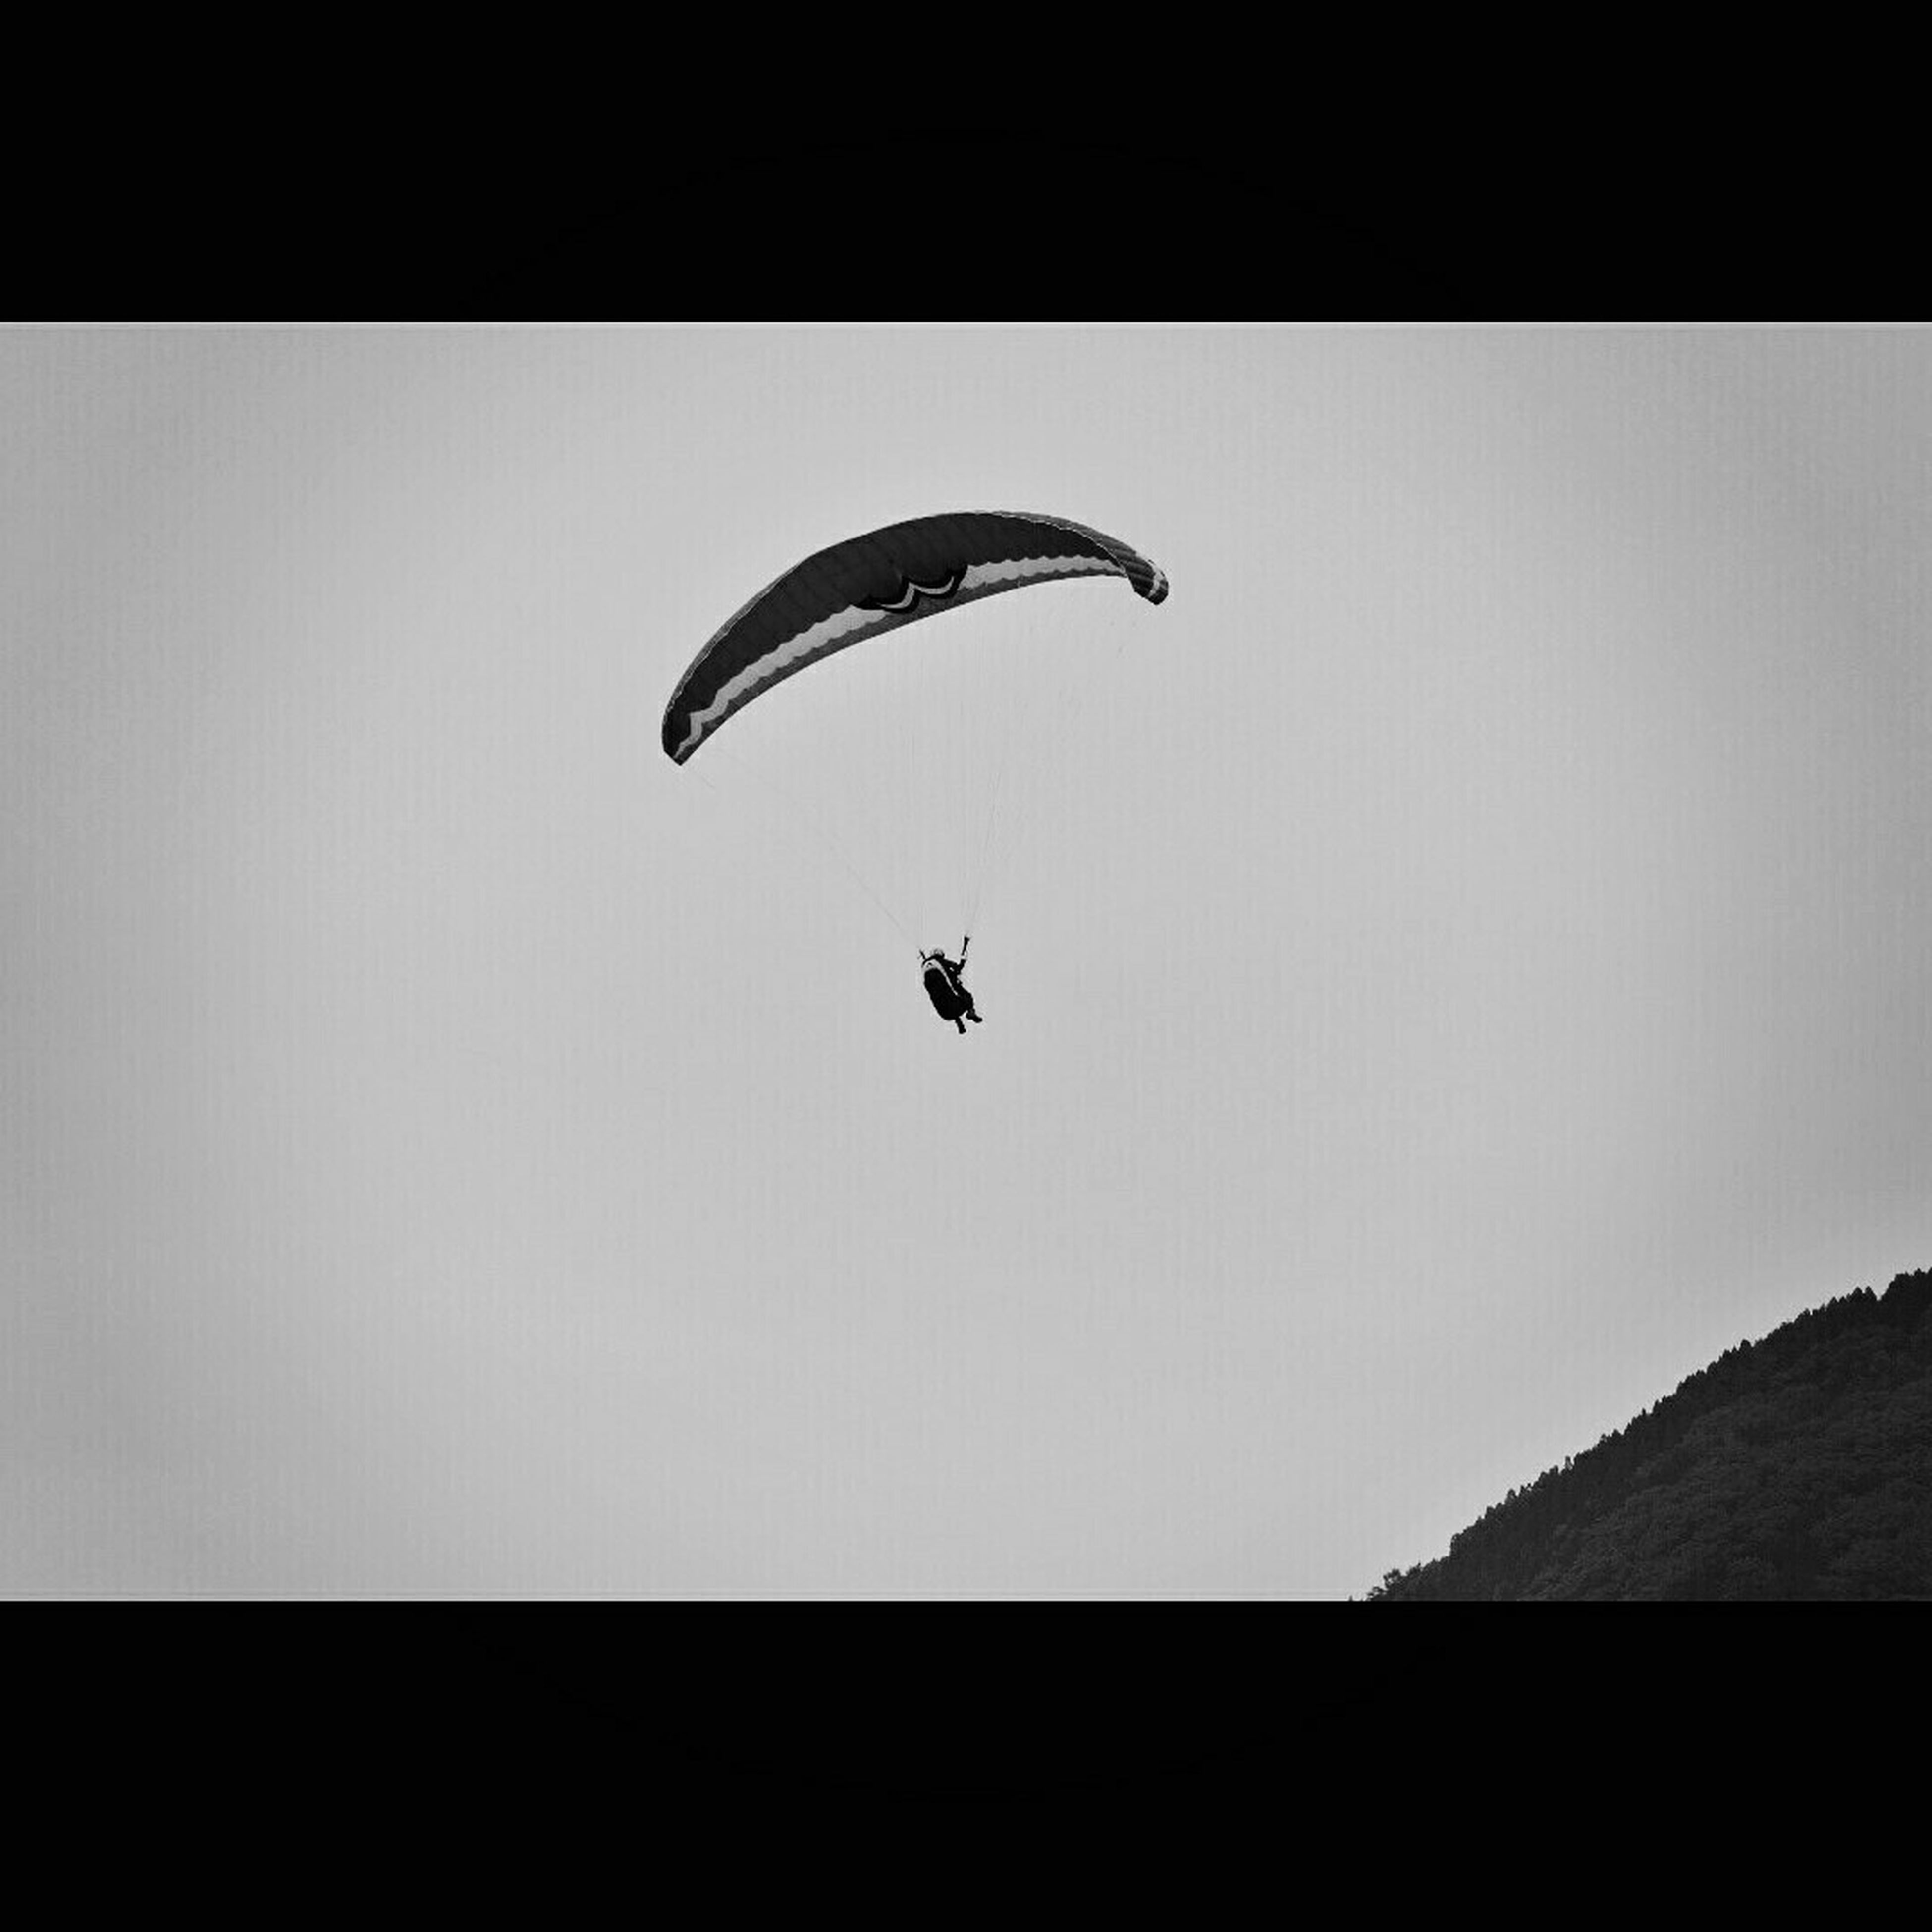 flying, mid-air, extreme sports, transportation, adventure, parachute, low angle view, paragliding, leisure activity, clear sky, copy space, silhouette, exhilaration, lifestyles, mode of transport, air vehicle, unrecognizable person, freedom